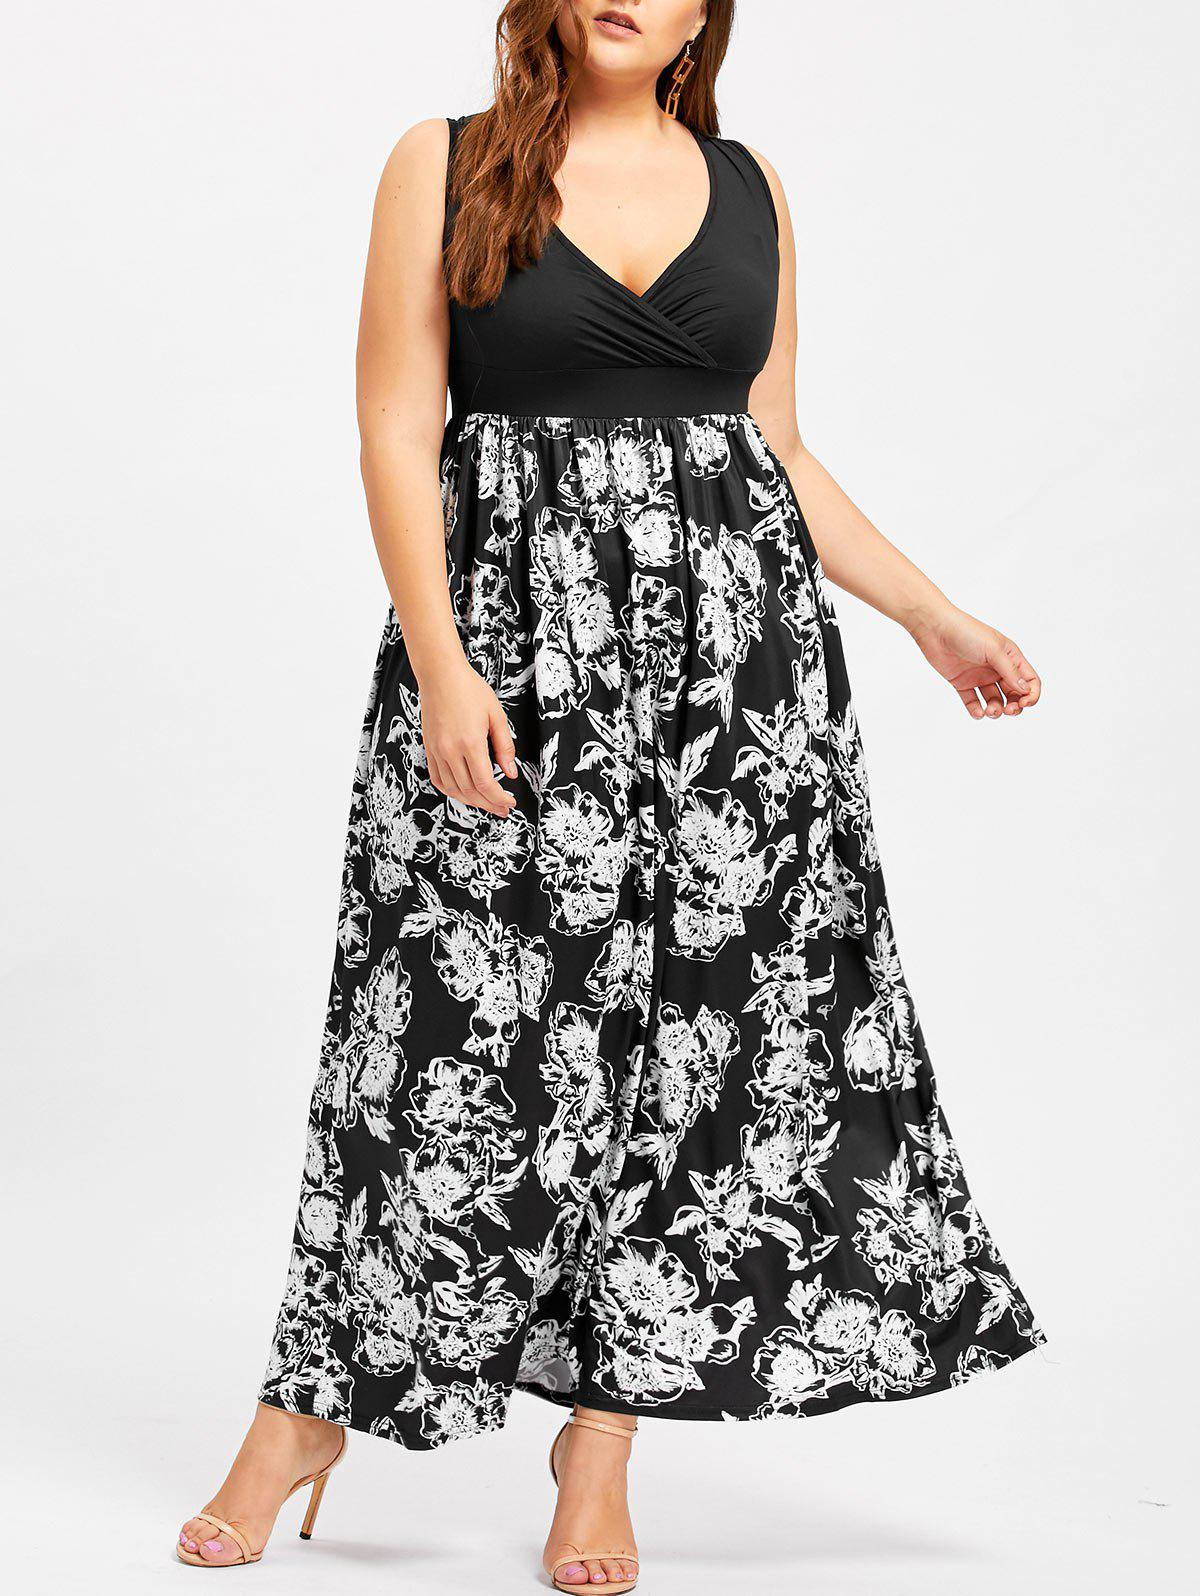 Plus Size Surplice Low Cut Flower DressWOMEN<br><br>Size: 4XL; Color: BLACK; Style: Casual; Material: Cotton,Polyester; Silhouette: A-Line; Dresses Length: Floor-Length; Neckline: Plunging Neck; Sleeve Length: Sleeveless; Waist: Empire; Pattern Type: Figure; With Belt: No; Season: Fall,Spring,Summer; Weight: 0.5050kg; Package Contents: 1 x Dress;